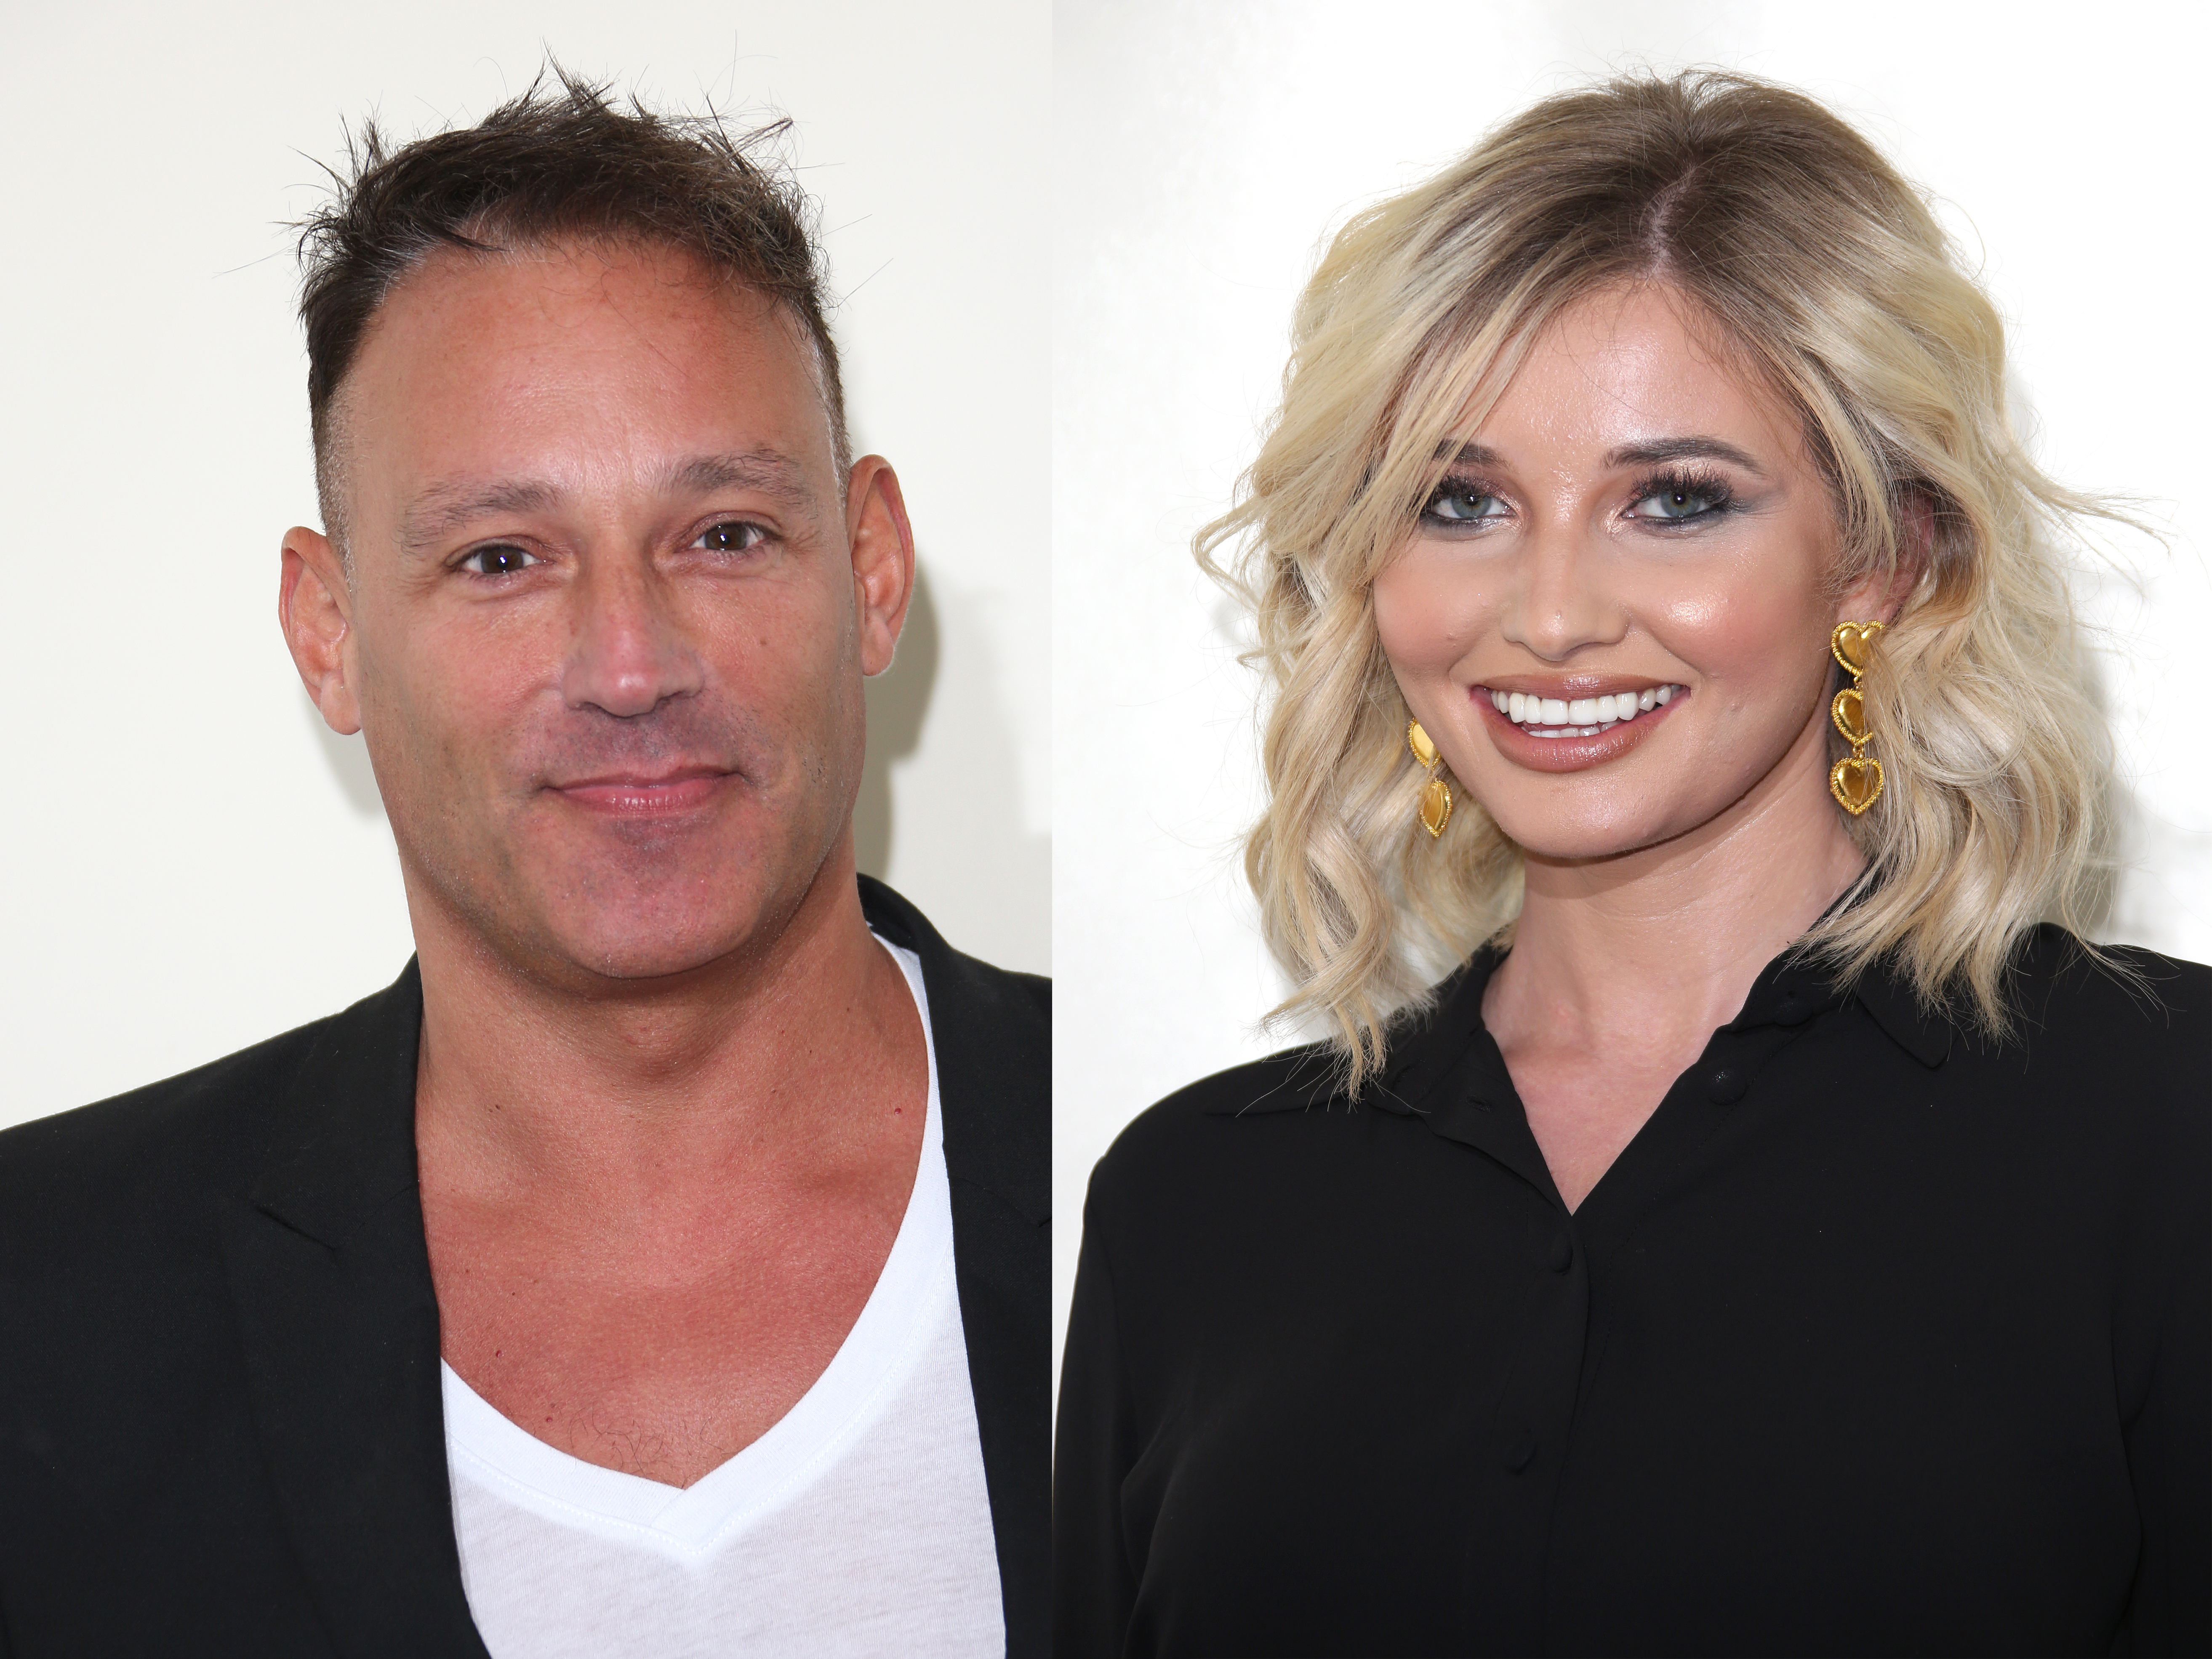 EXCLUSIVE: 'She's an attractive girl' Toby Anstis breaks his silence over dating Love Island's Amy Hart